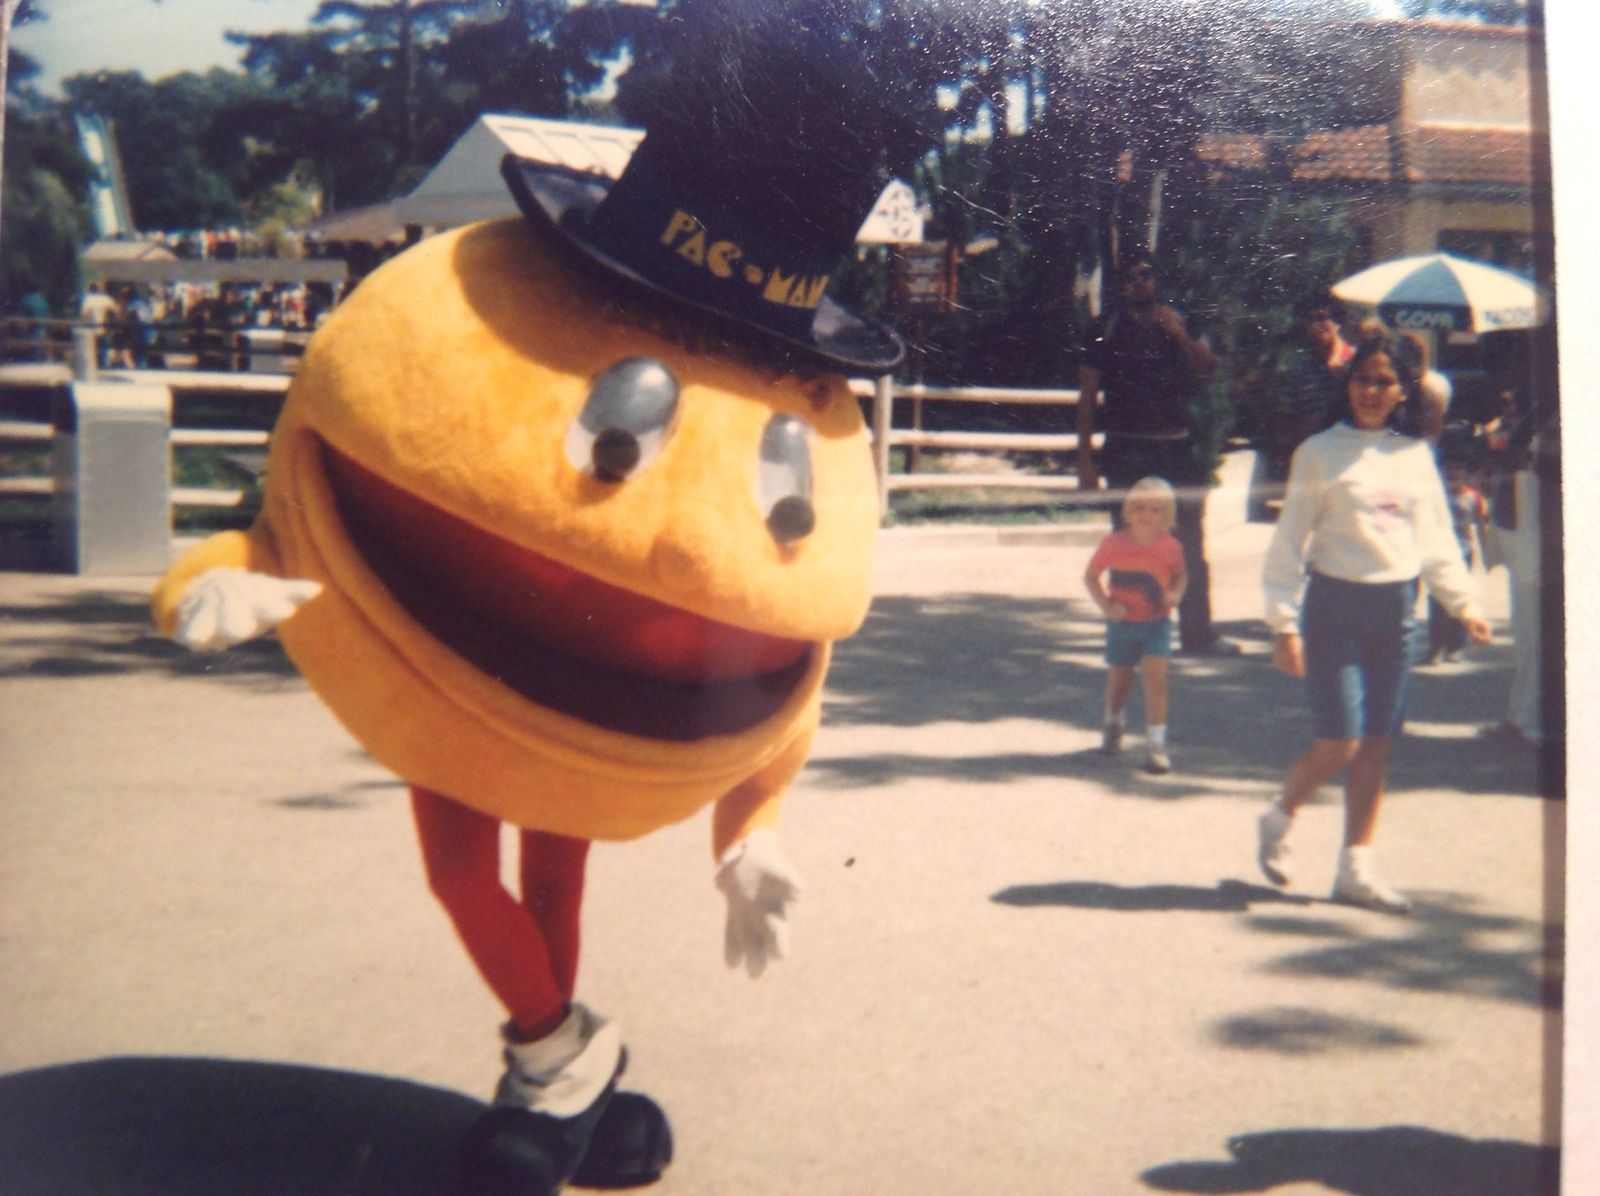 Pacman at Great Adventure